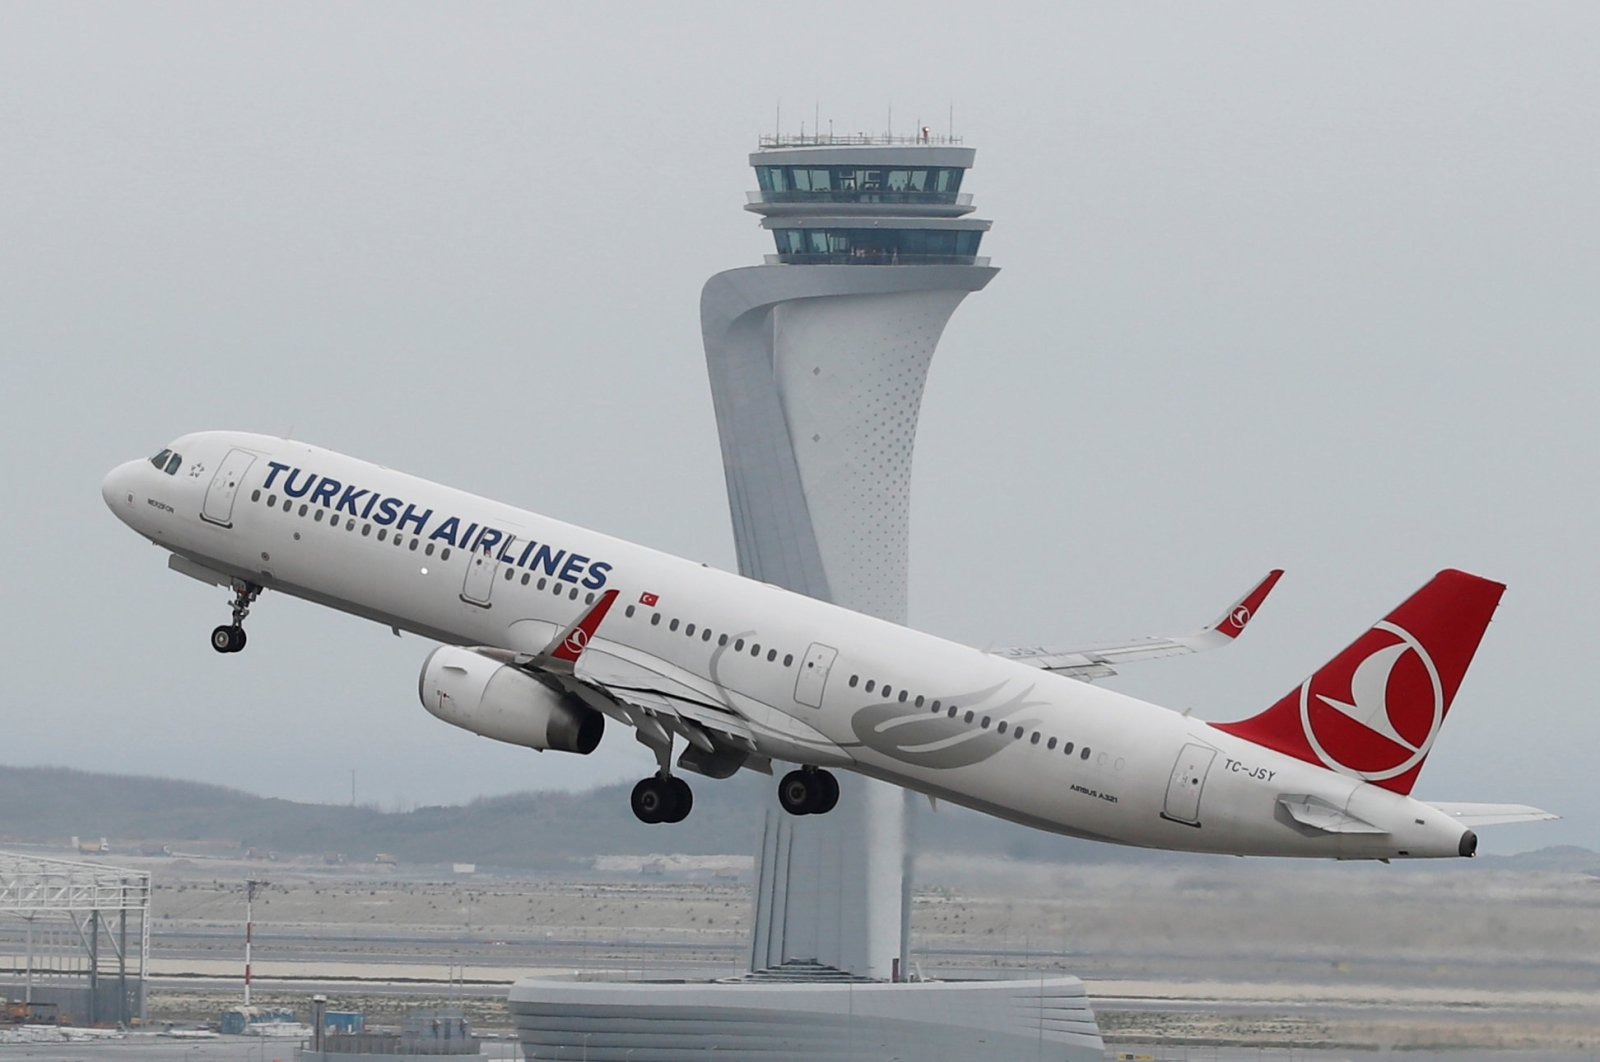 A Turkish Airlines plane takes off from the city's new Istanbul Airport, Istanbul, Turkey, April 6, 2019. (Reuters Photo)